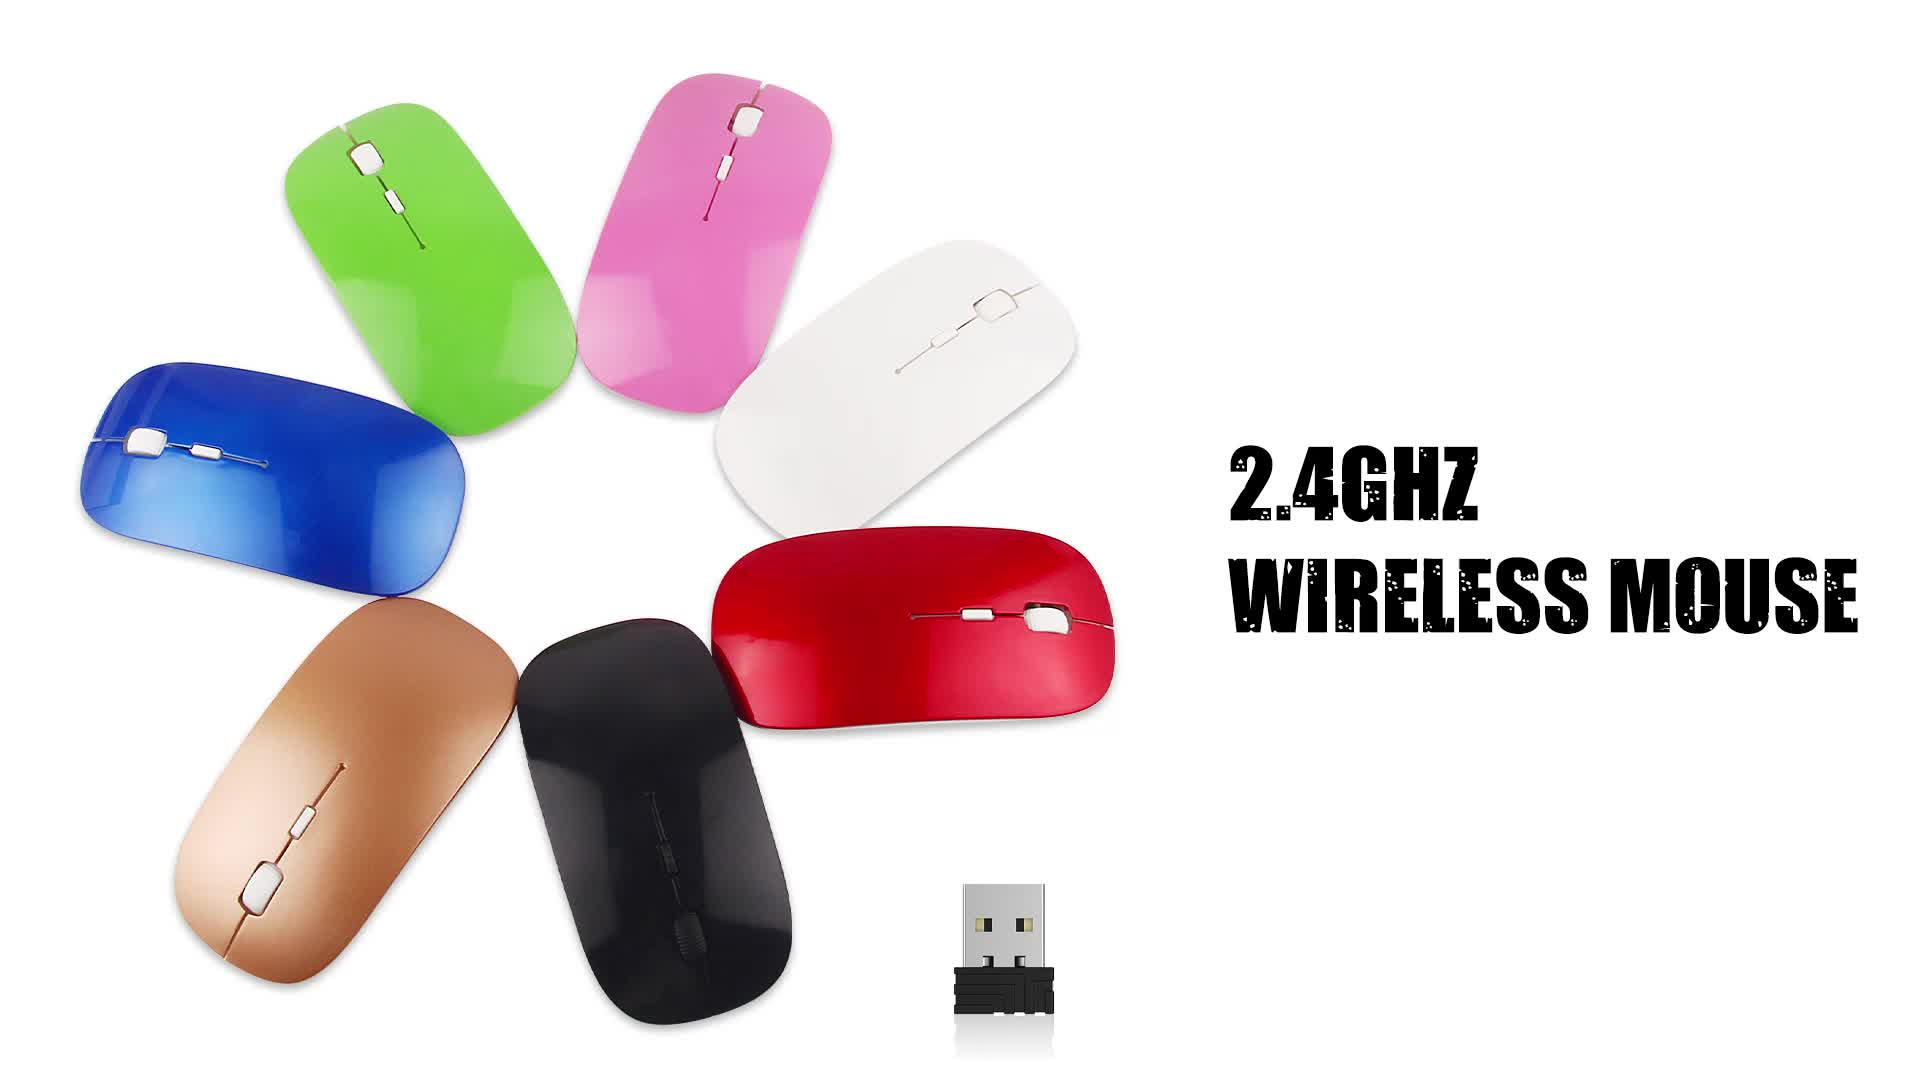 OEM Promotion USB Computer Gaming Wireless Mouse for Office Home